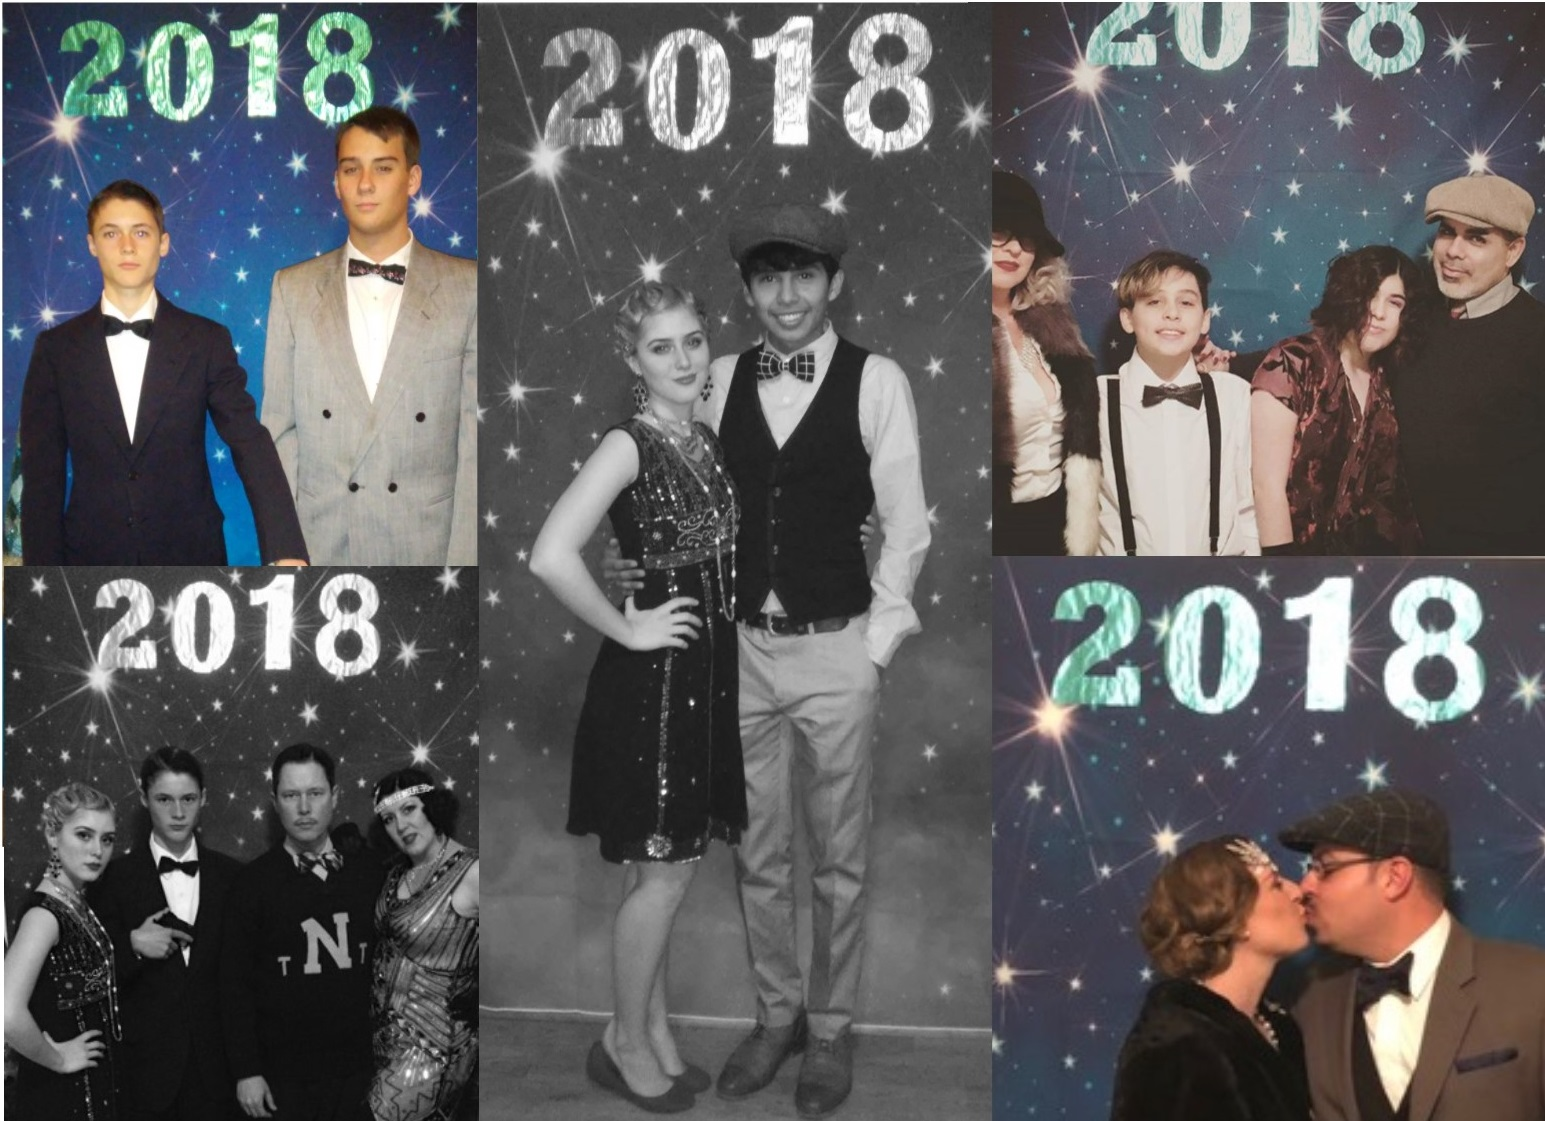 1920s New years Eve party 2018 backdrop collage